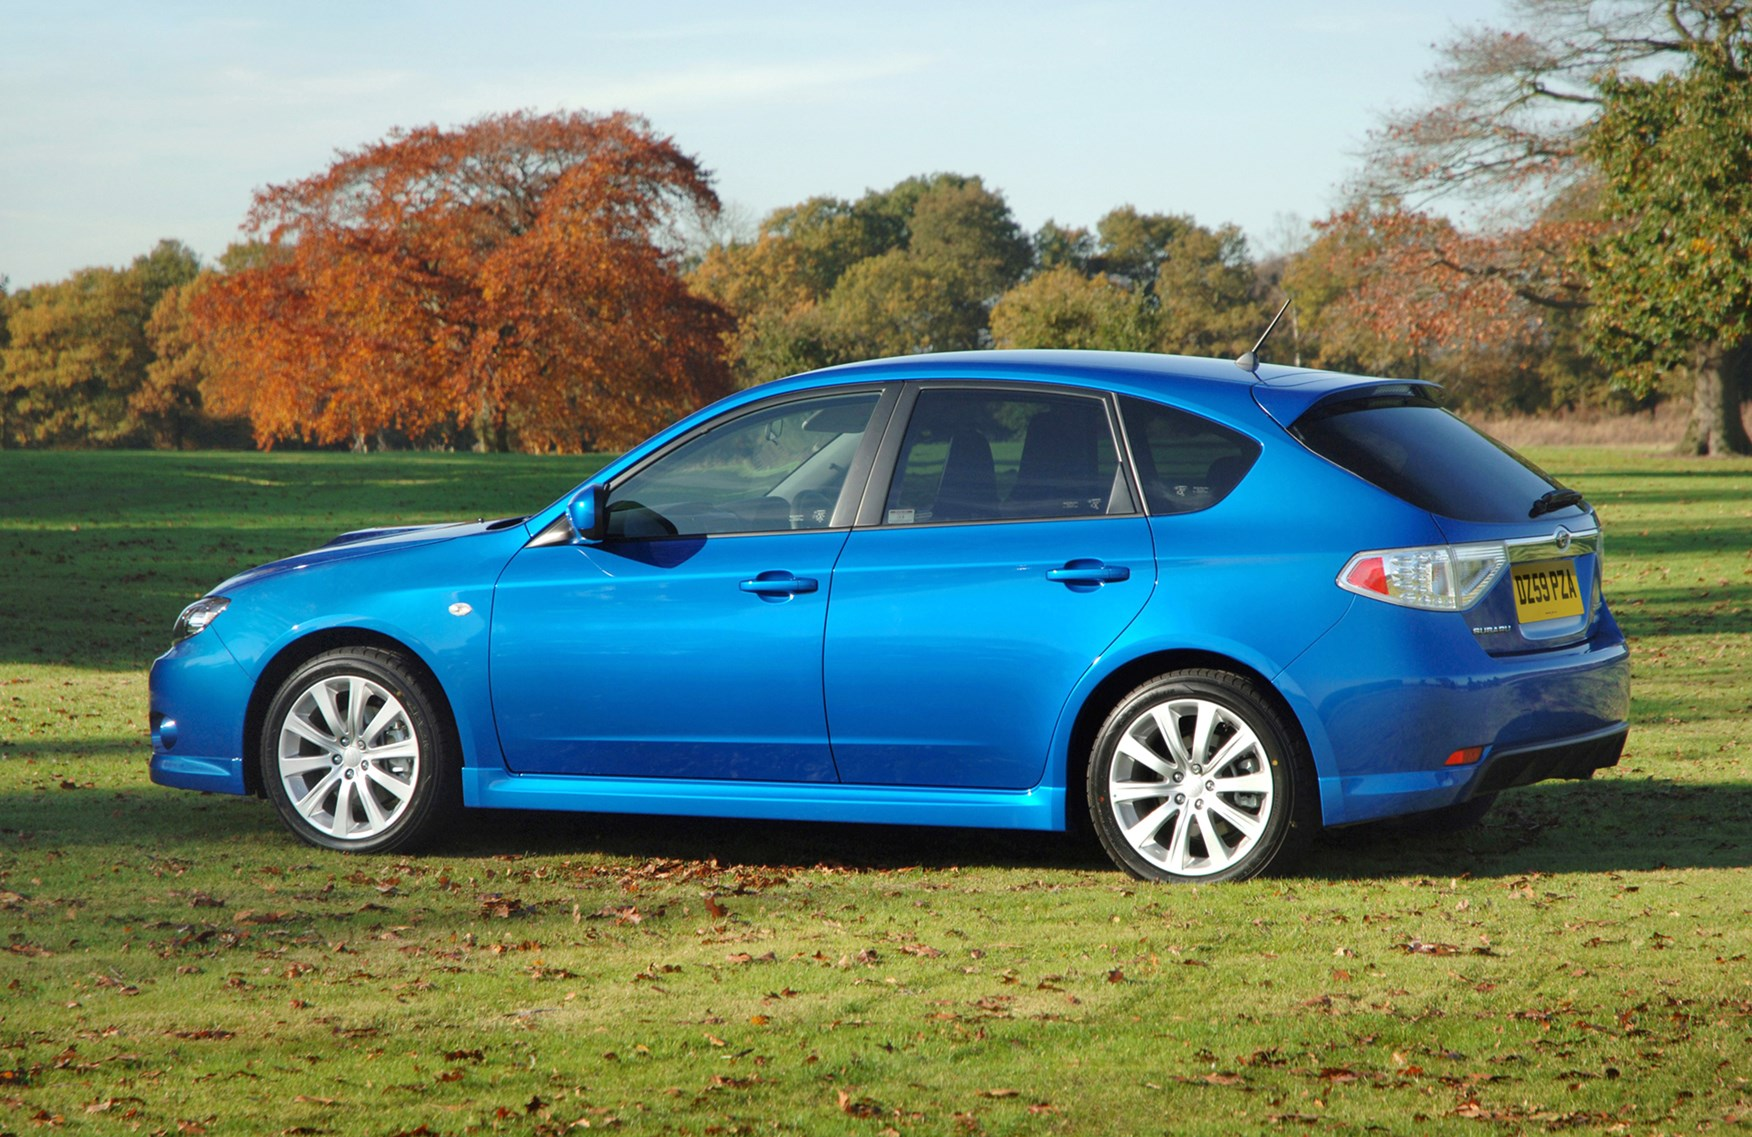 Subaru Impreza Hatchback Review (2007 - 2012) | Parkers